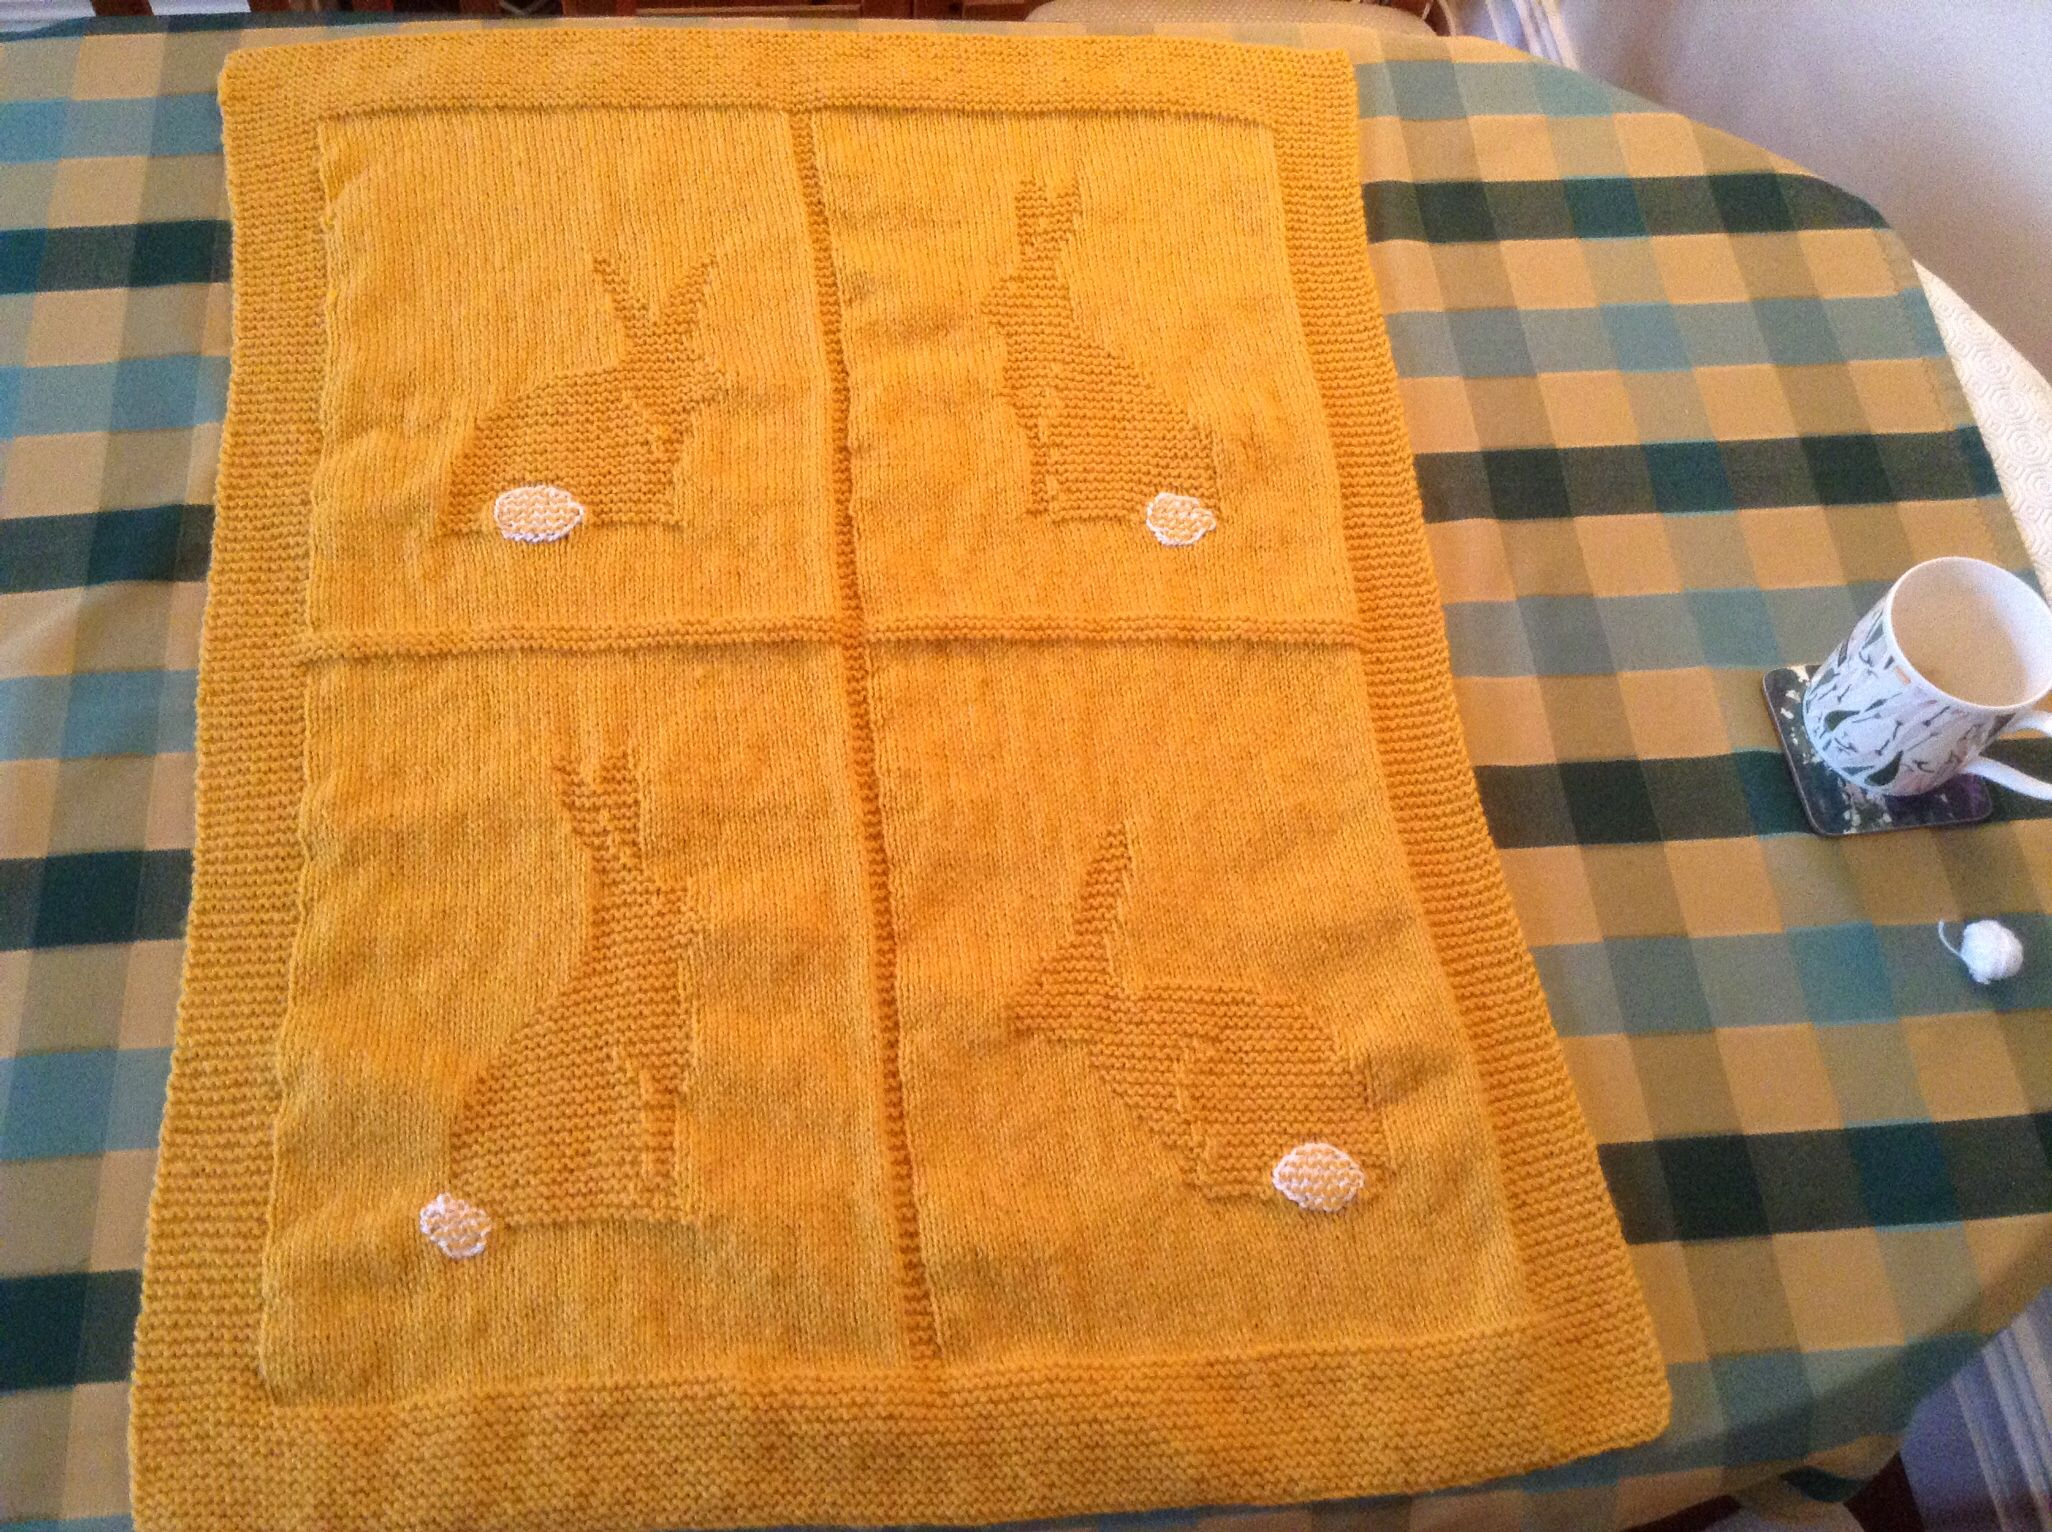 bunny blanket project by Heather L | Blanket knitting ...